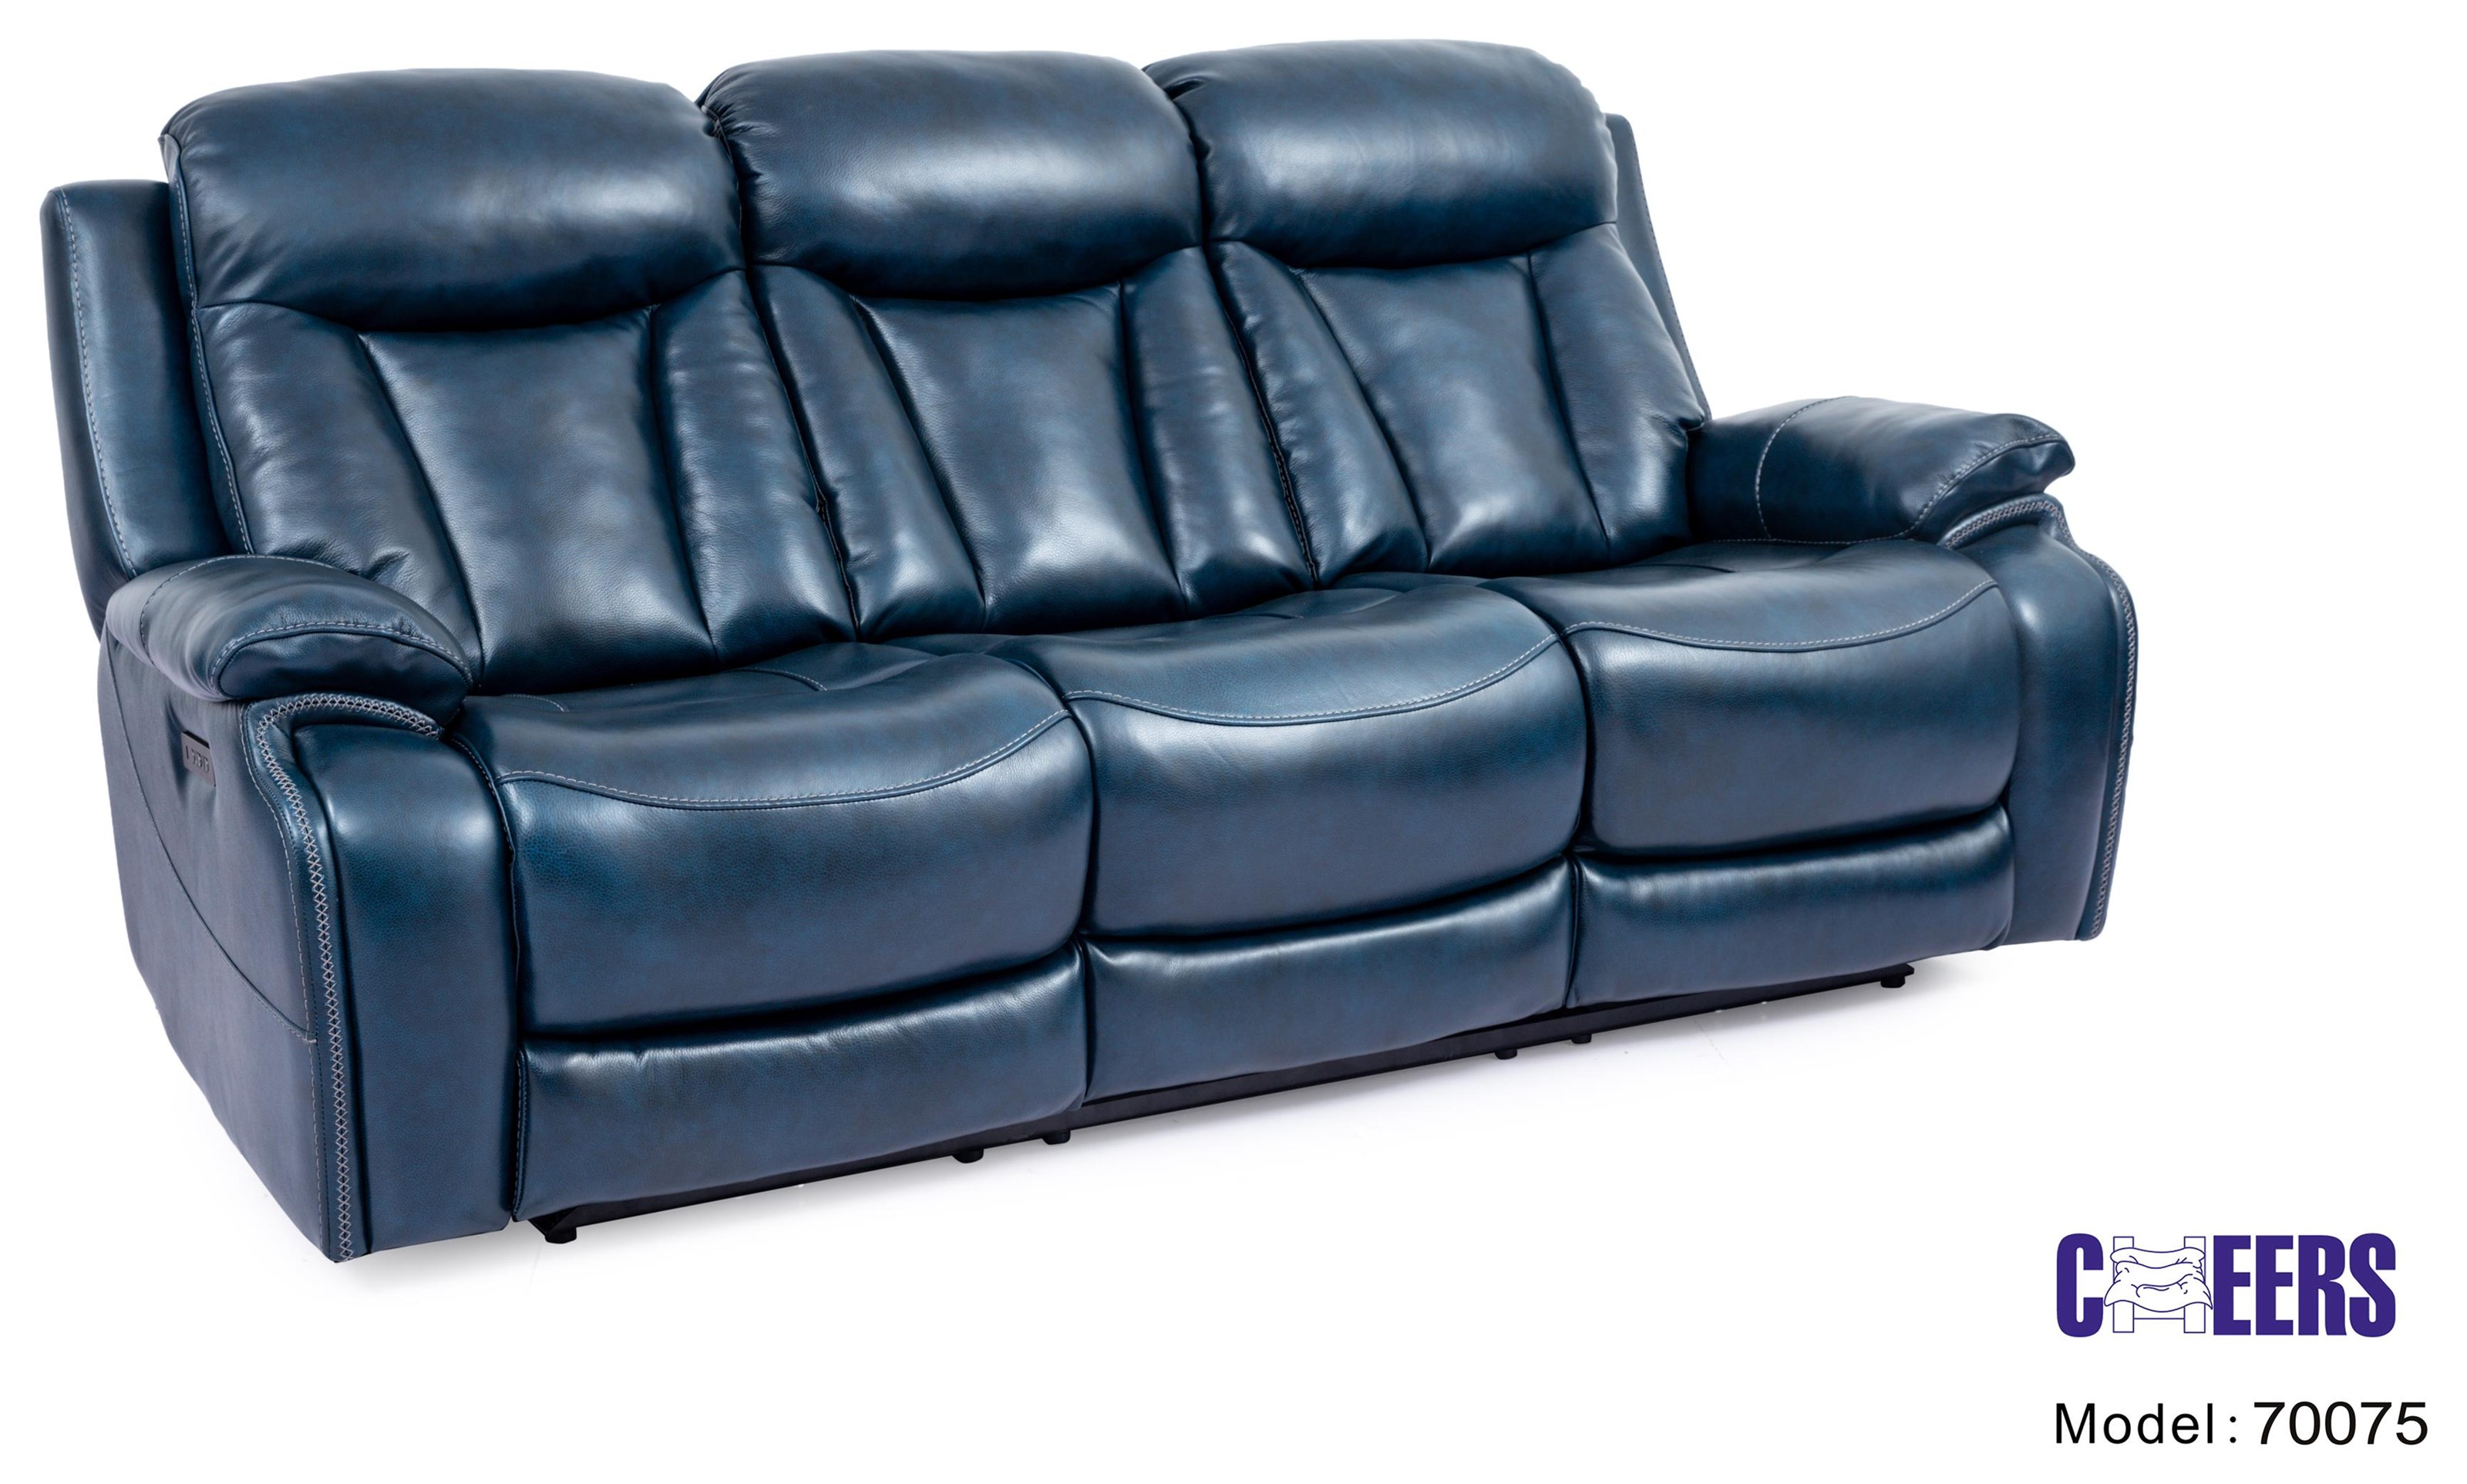 70075 Power Reclining Sofa with Power Headrest by Cheers at Furniture Fair - North Carolina